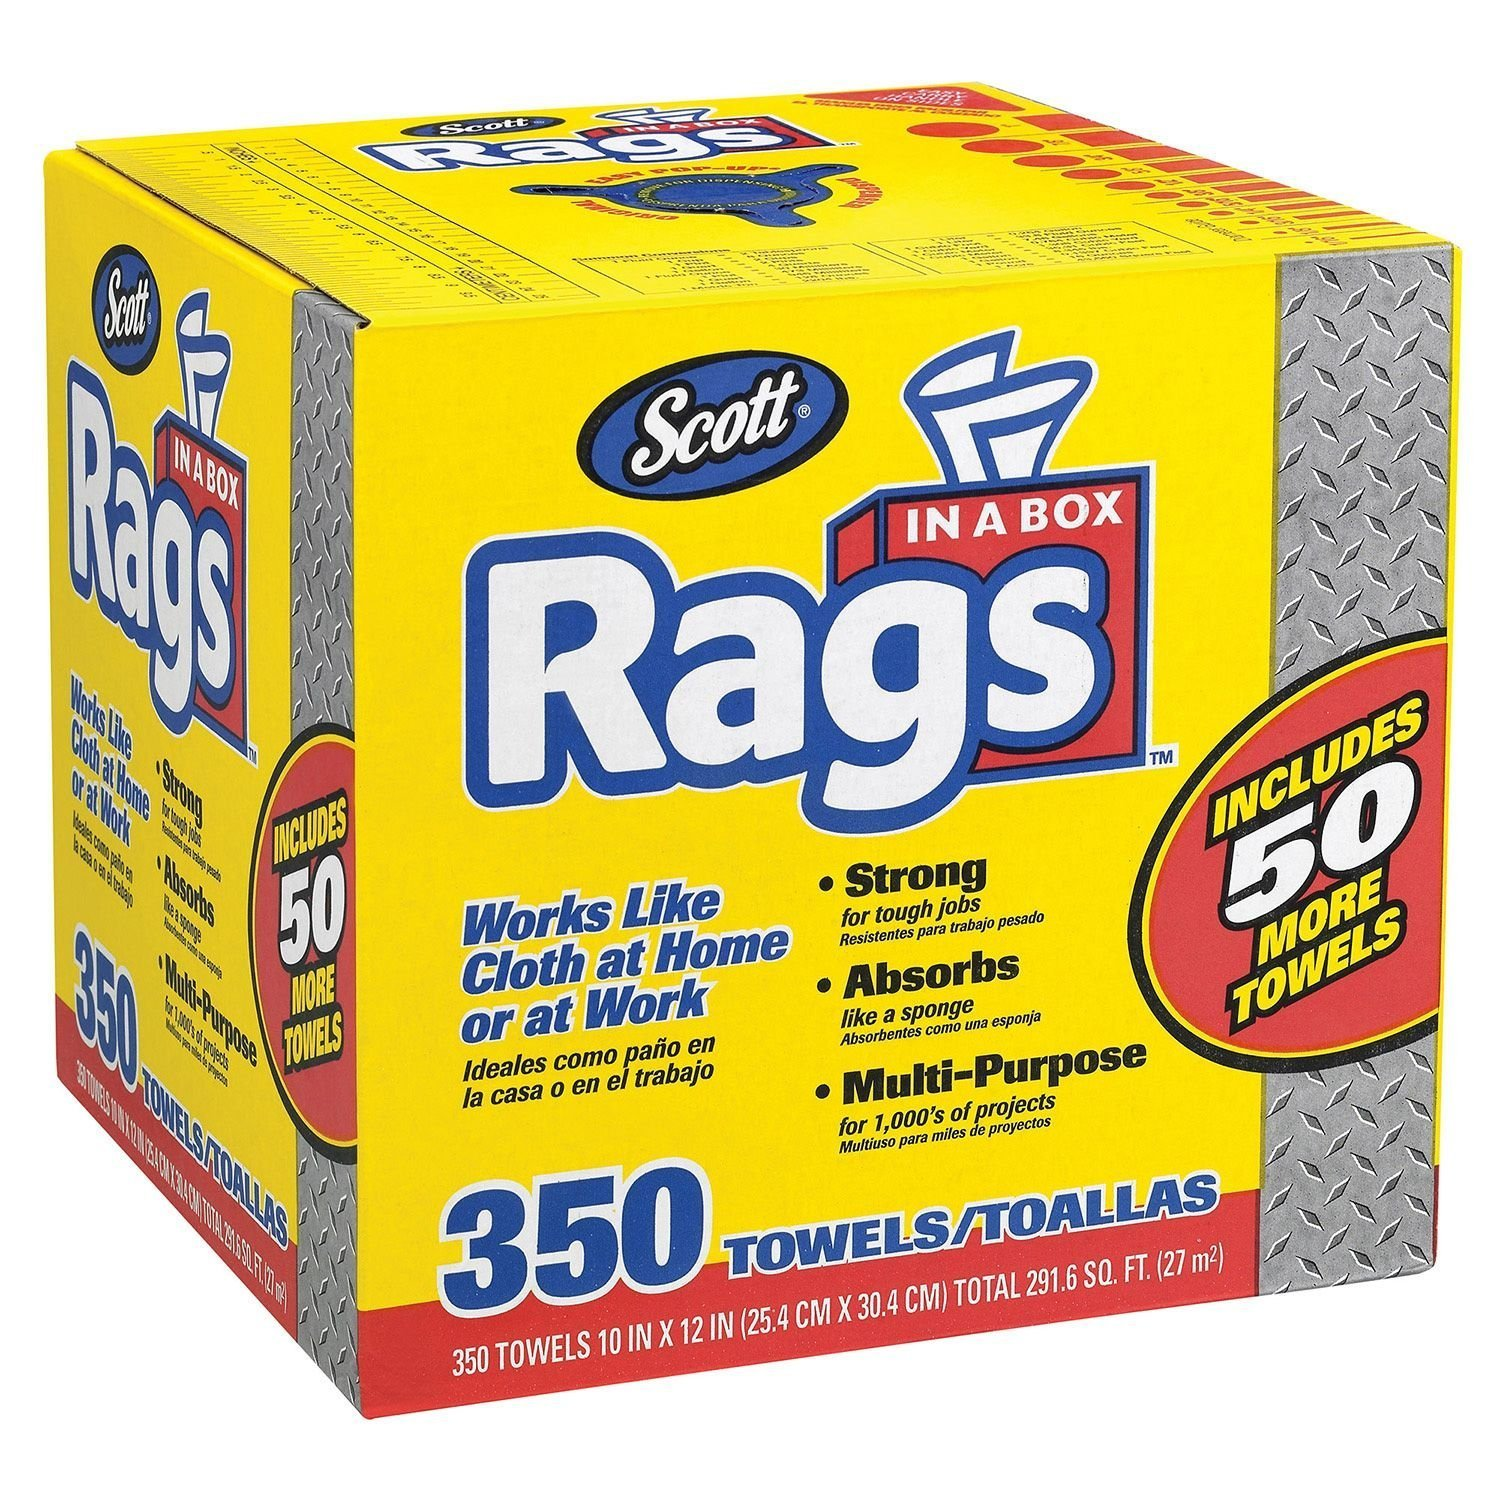 amazoncom scott rags in a box 350 count health personal care - Box Of Rags